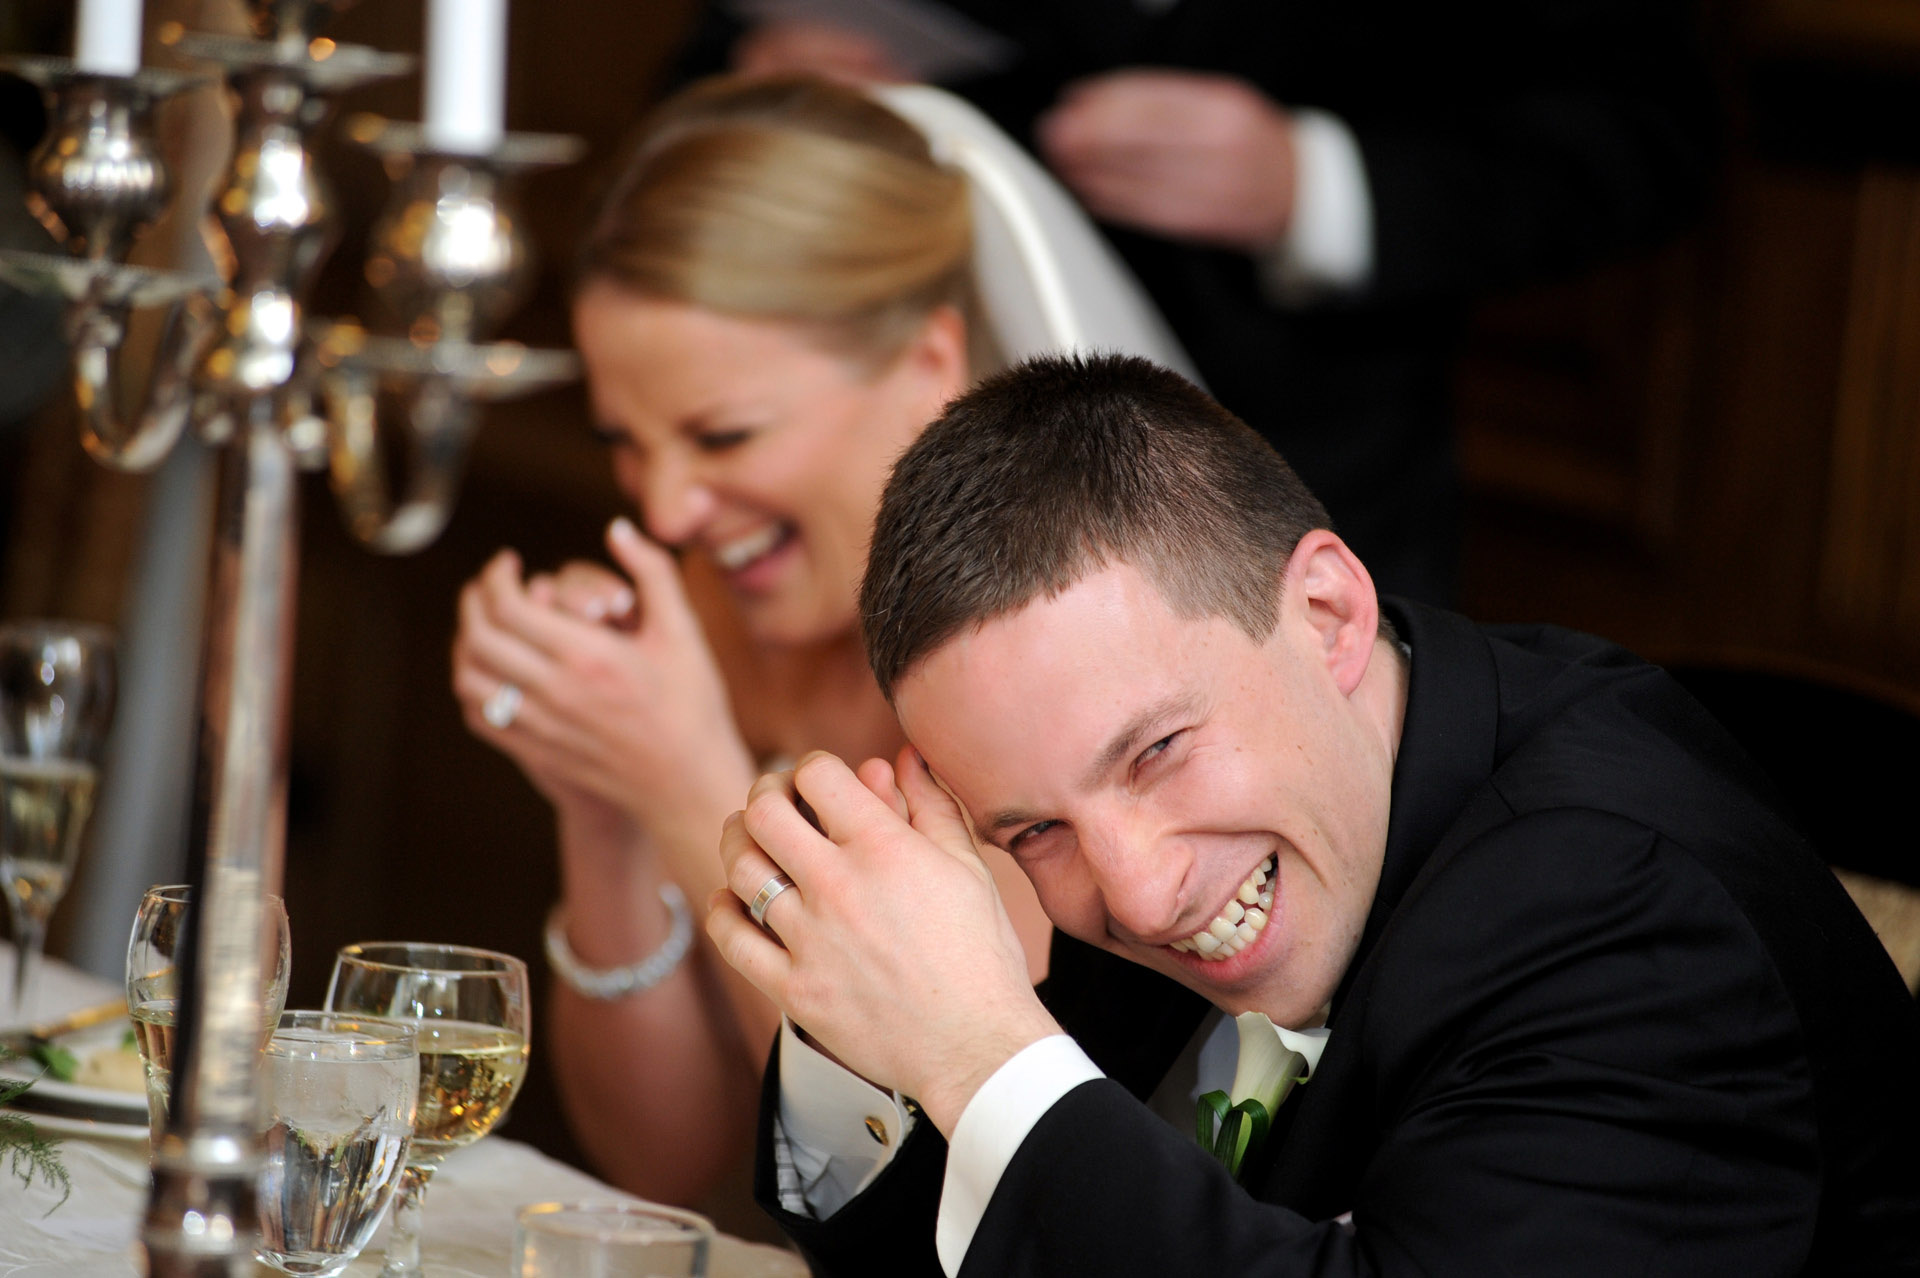 A windy winter wedding in Michigan features the bride and groom reacting to the toasts given during their wedding reception at the Detroit Athletic Club.